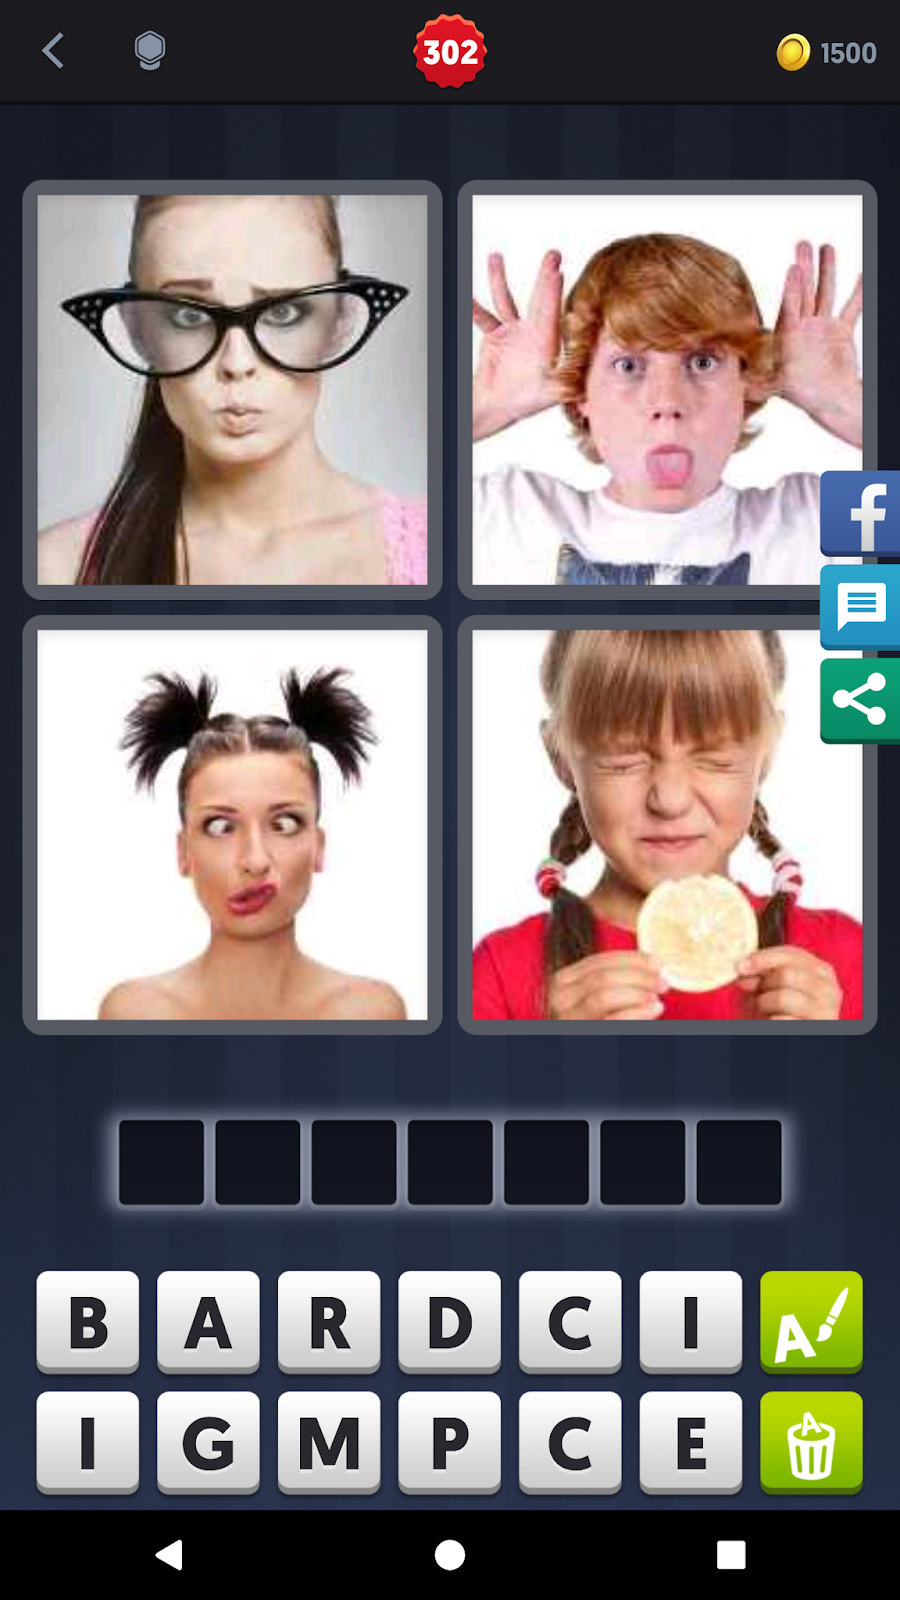 4 Pics 1 Word Answers Solutions Level 302 Grimace